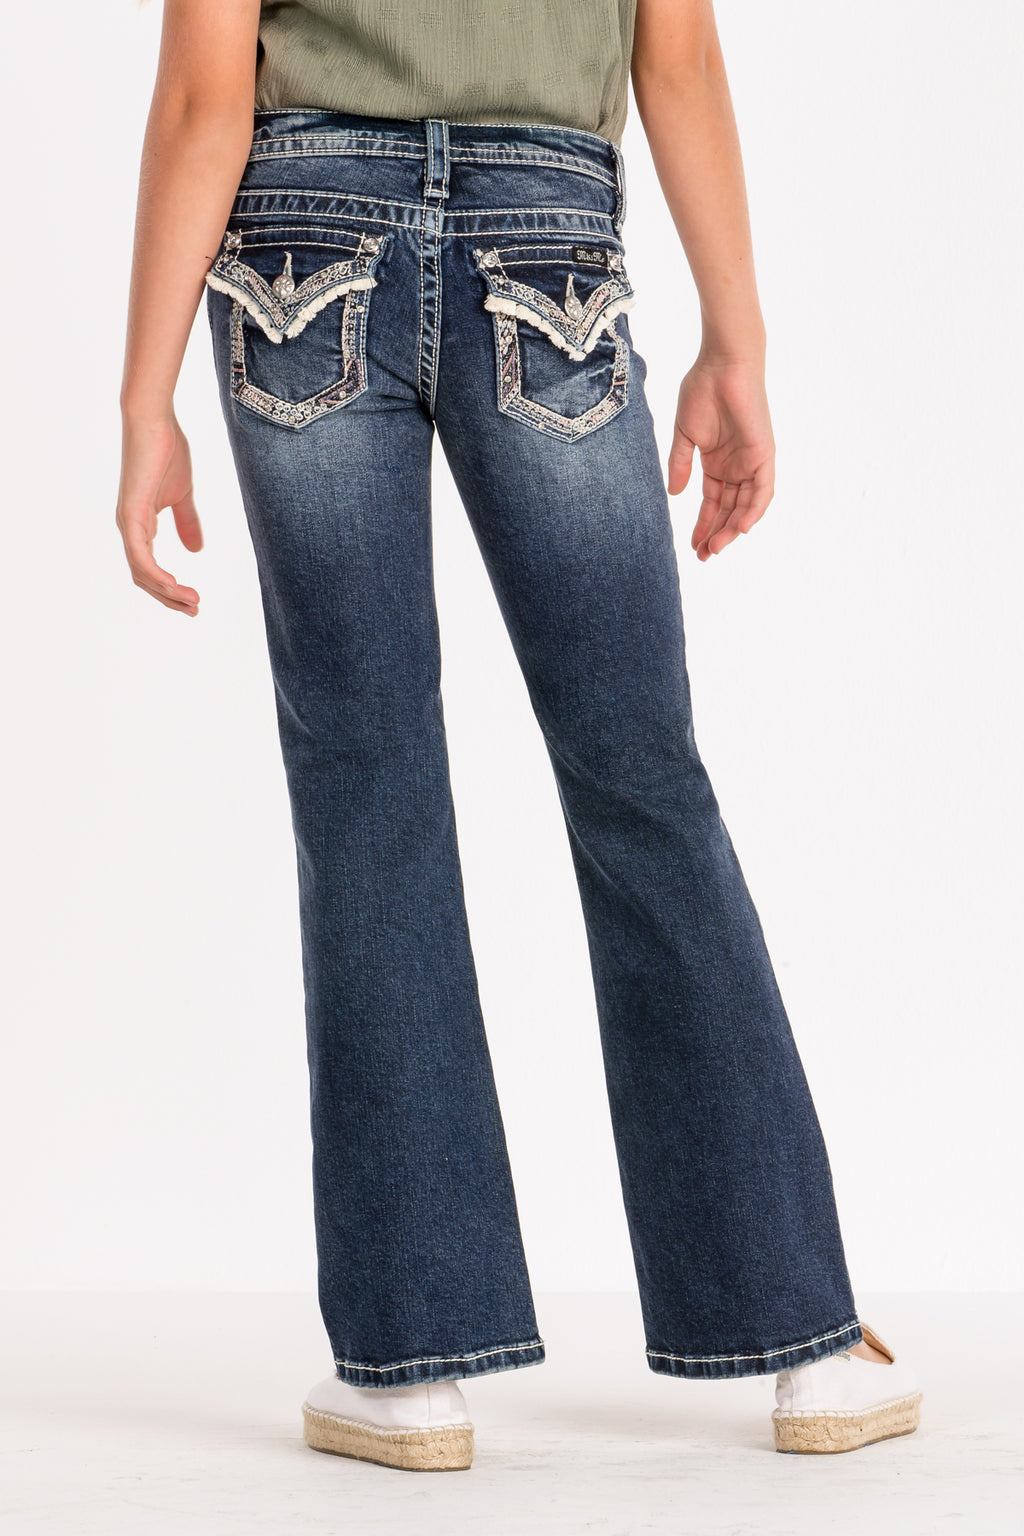 2eb668eb GIRLS FRILLY AND FLIRTY BOOTCUT JEANS